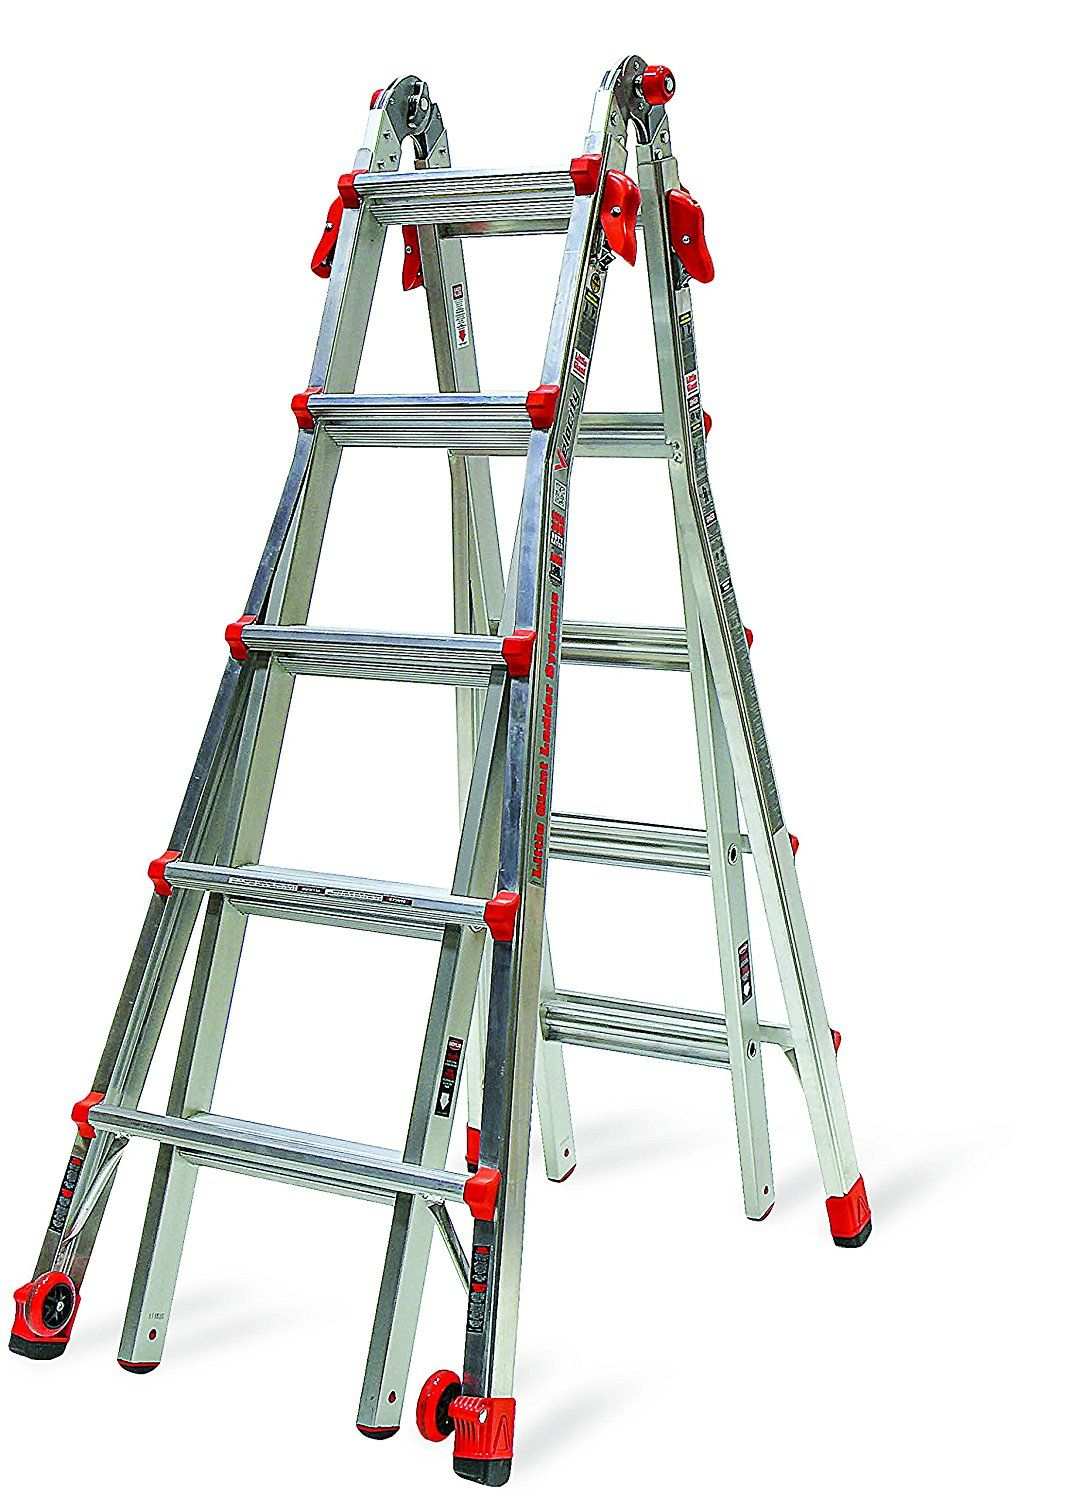 Top 10 Best Step Ladders And Extension Ladders Reviews Ladder Little Giants Step Ladders